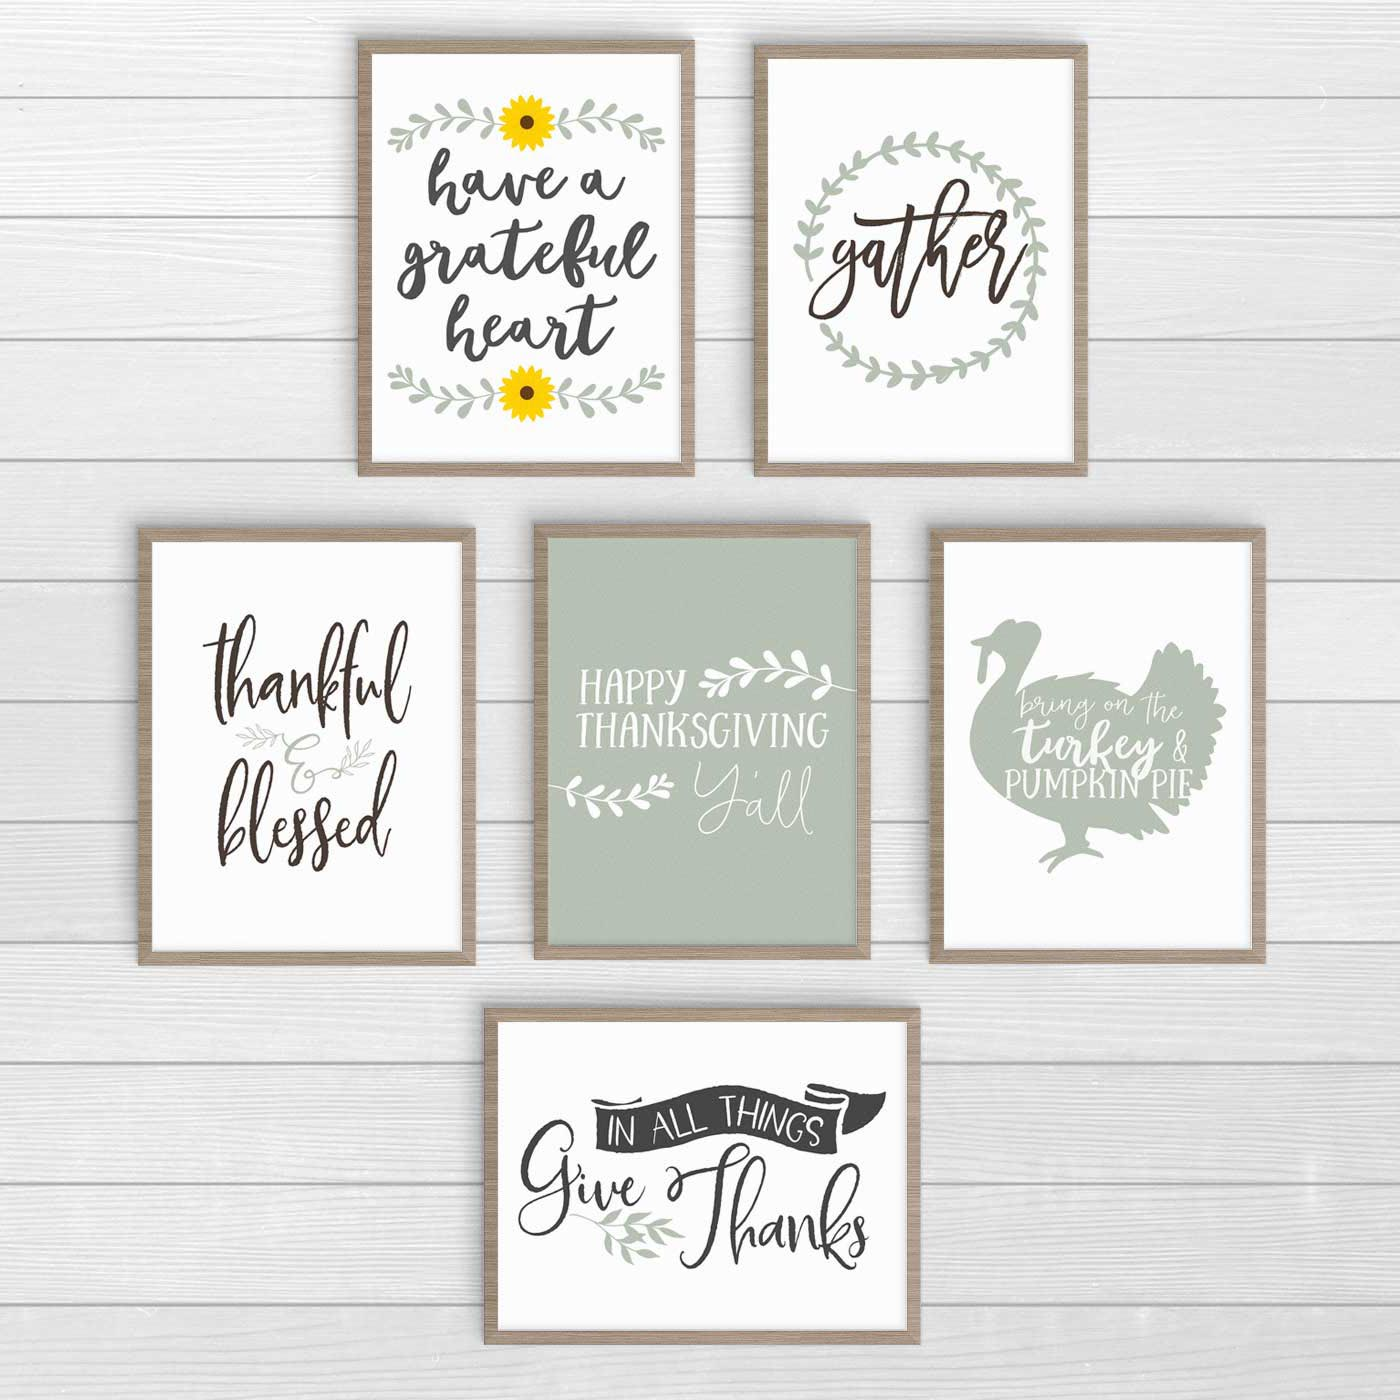 6 Farmhouse Thanksgiving prints you can print for free. Click over to download and to check out the others. #FarmhouseThanksgivingDecor #FreePrintables